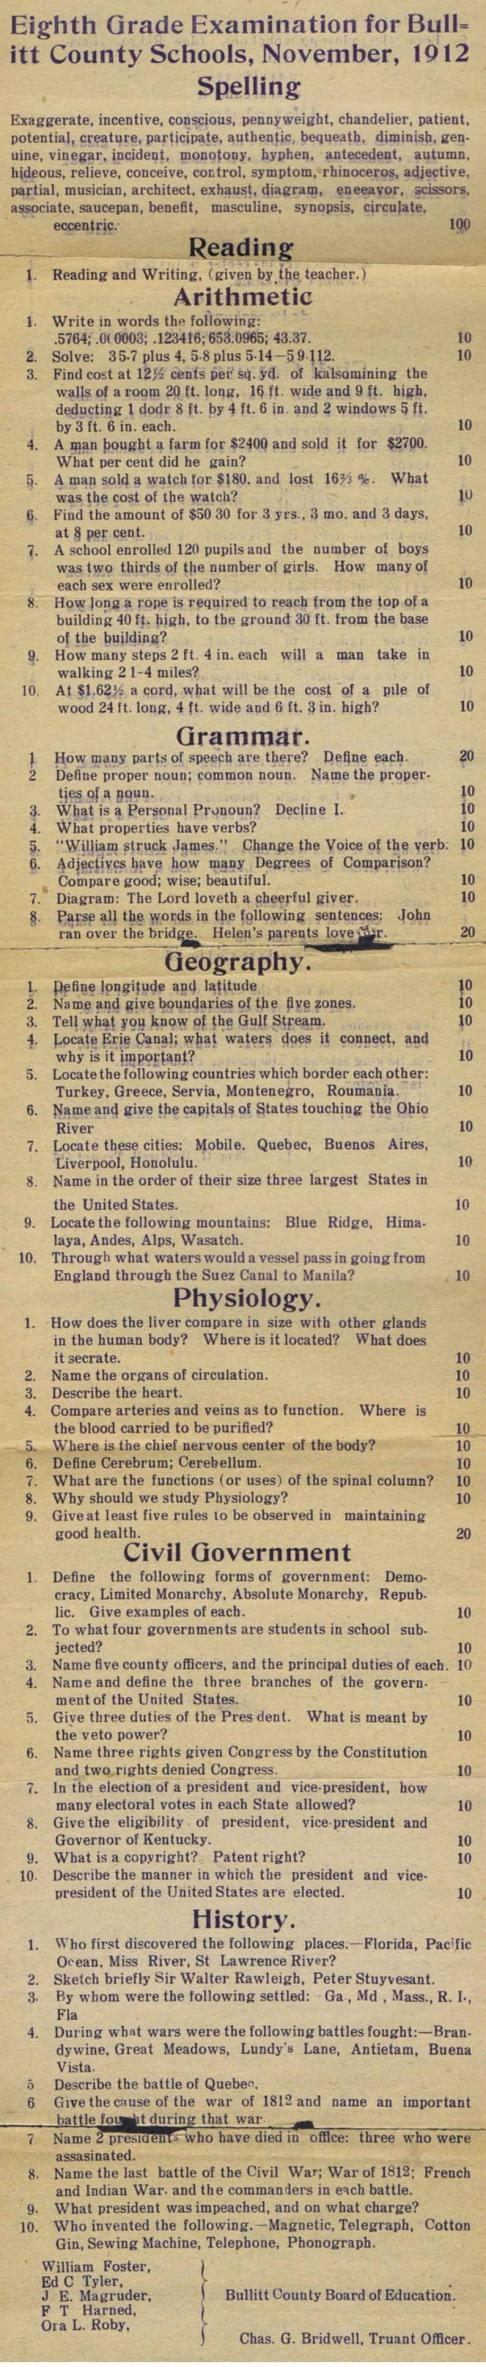 EIGHTH GRADE EXAM (Bullitt County, Kentucky), November 1912 So, you think YOUR CHILDREN as so SMART ???????  Then take a look at this . . .